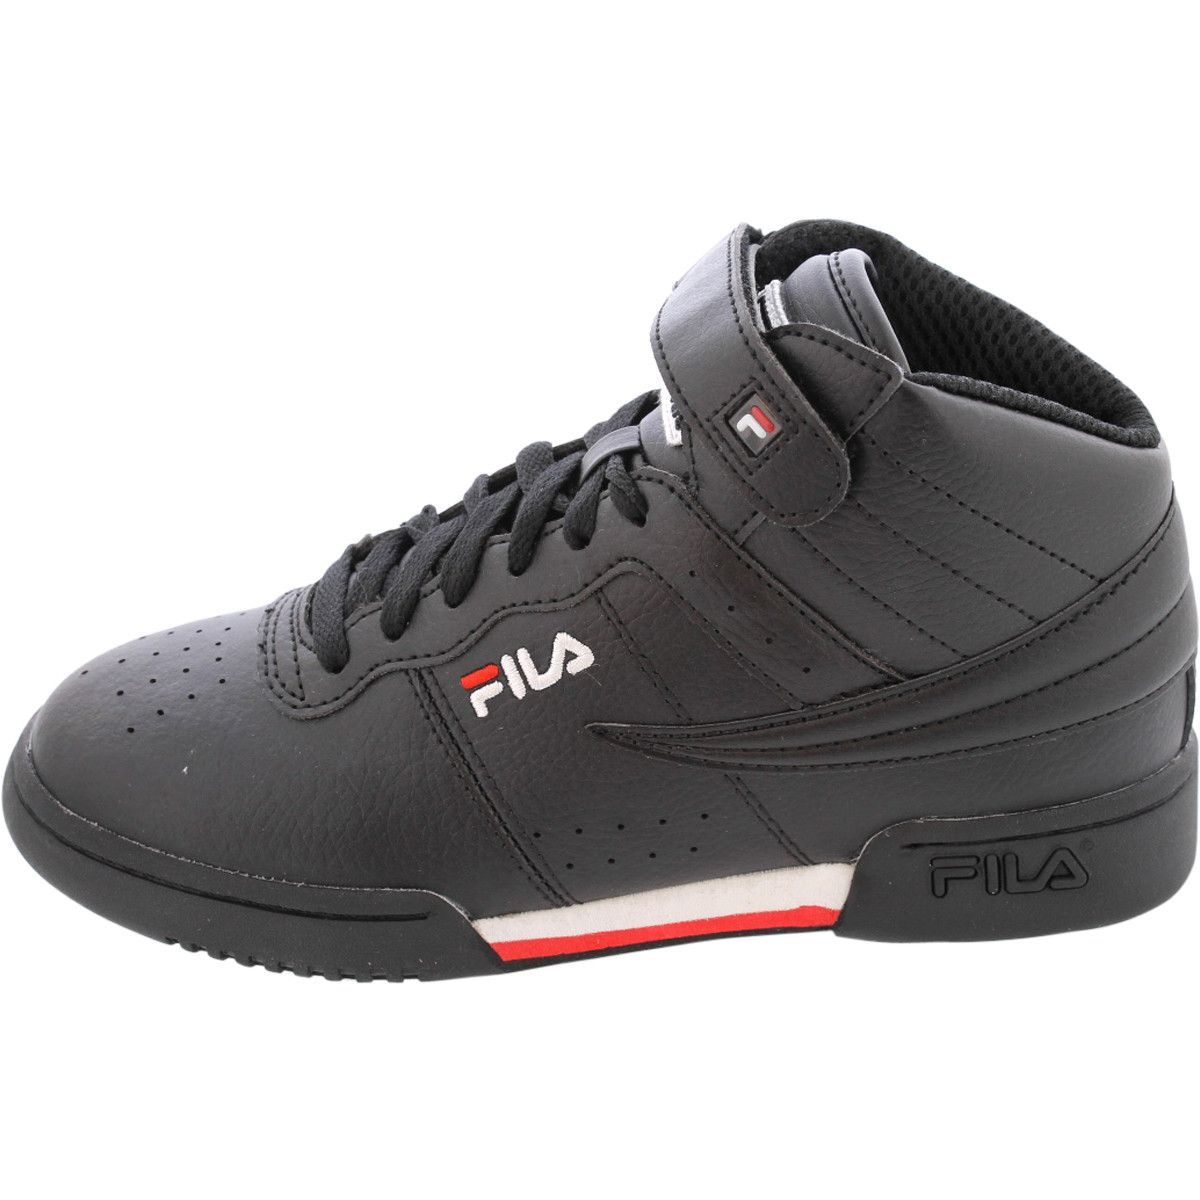 Boys' F13 Hi Top Sneakers (Grade School) | Velcro straps, Soft fabrics and  Closure